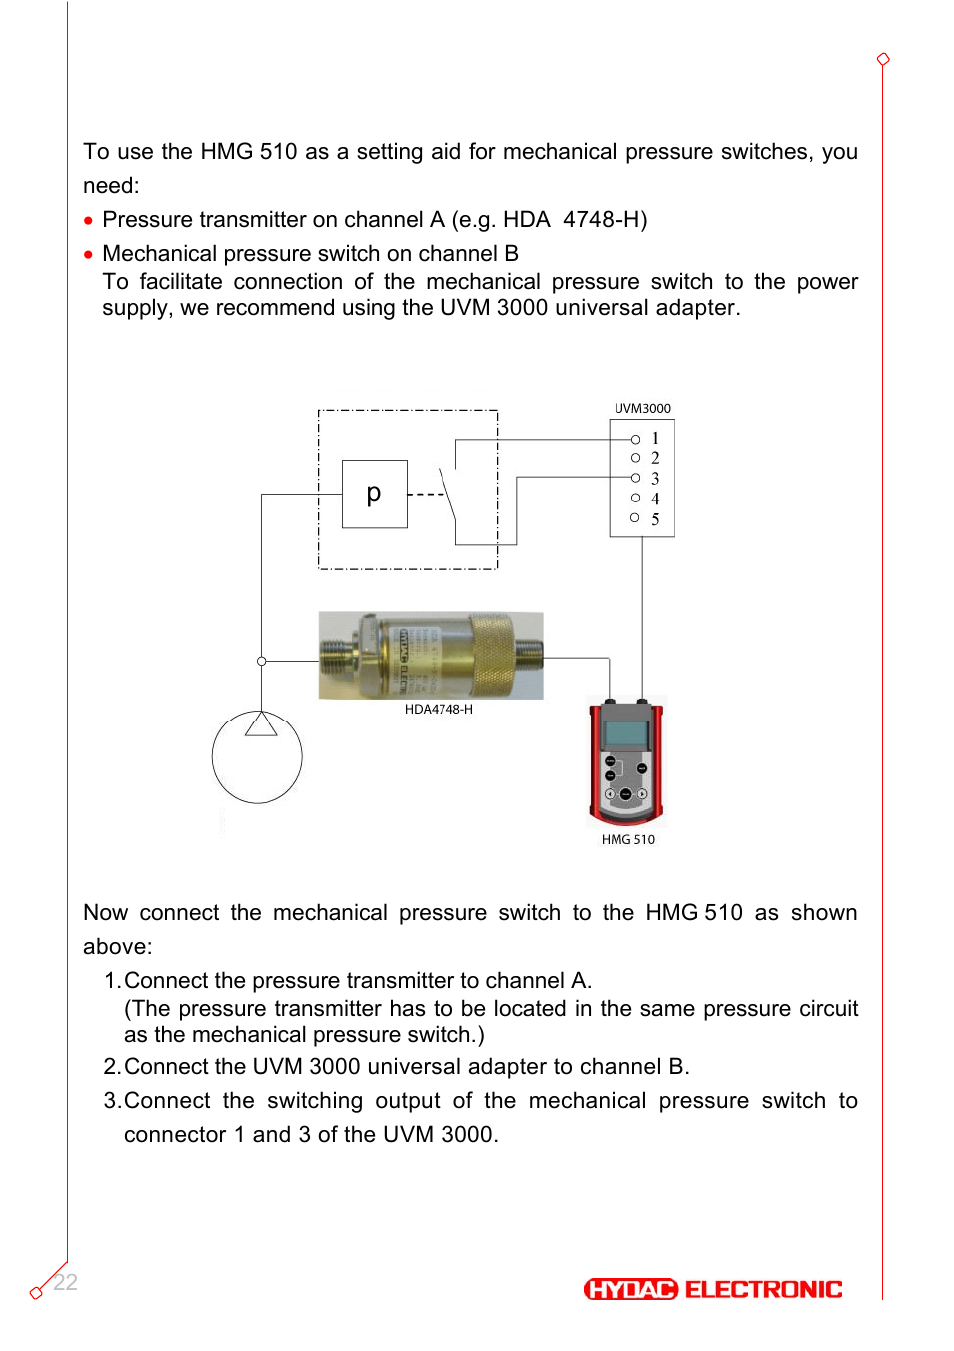 Setting aid for mechanical pressure switches connection diagram setting aid for mechanical pressure switches connection diagram hydac hmg 510 user manual page 22 26 asfbconference2016 Images